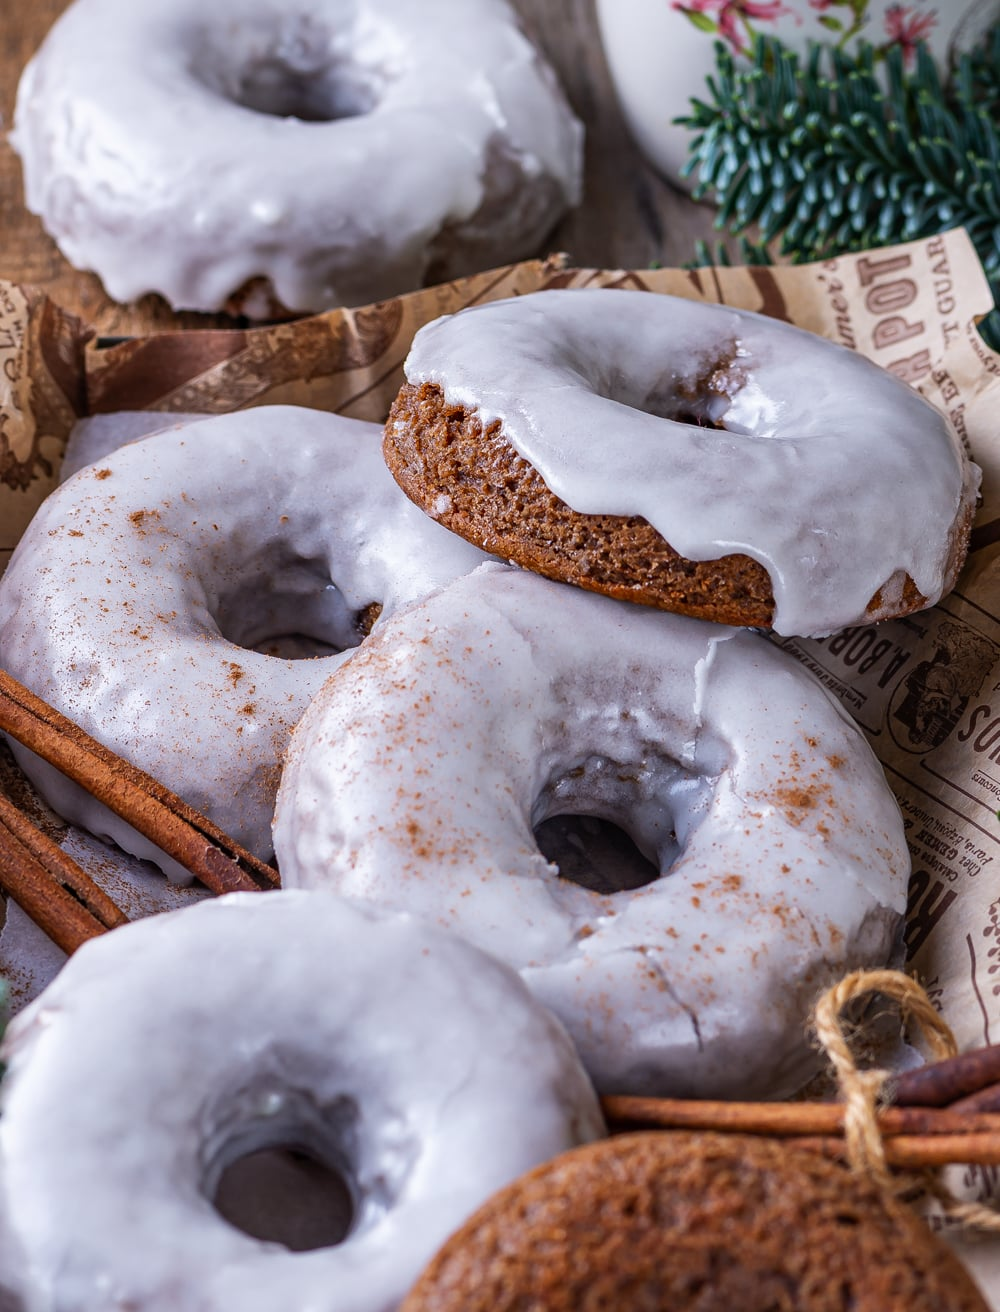 A close up of four glazed gingerbread donuts overlapping each other on a piece of paper. One glazed gingerbread donut is behind the piece of paper.